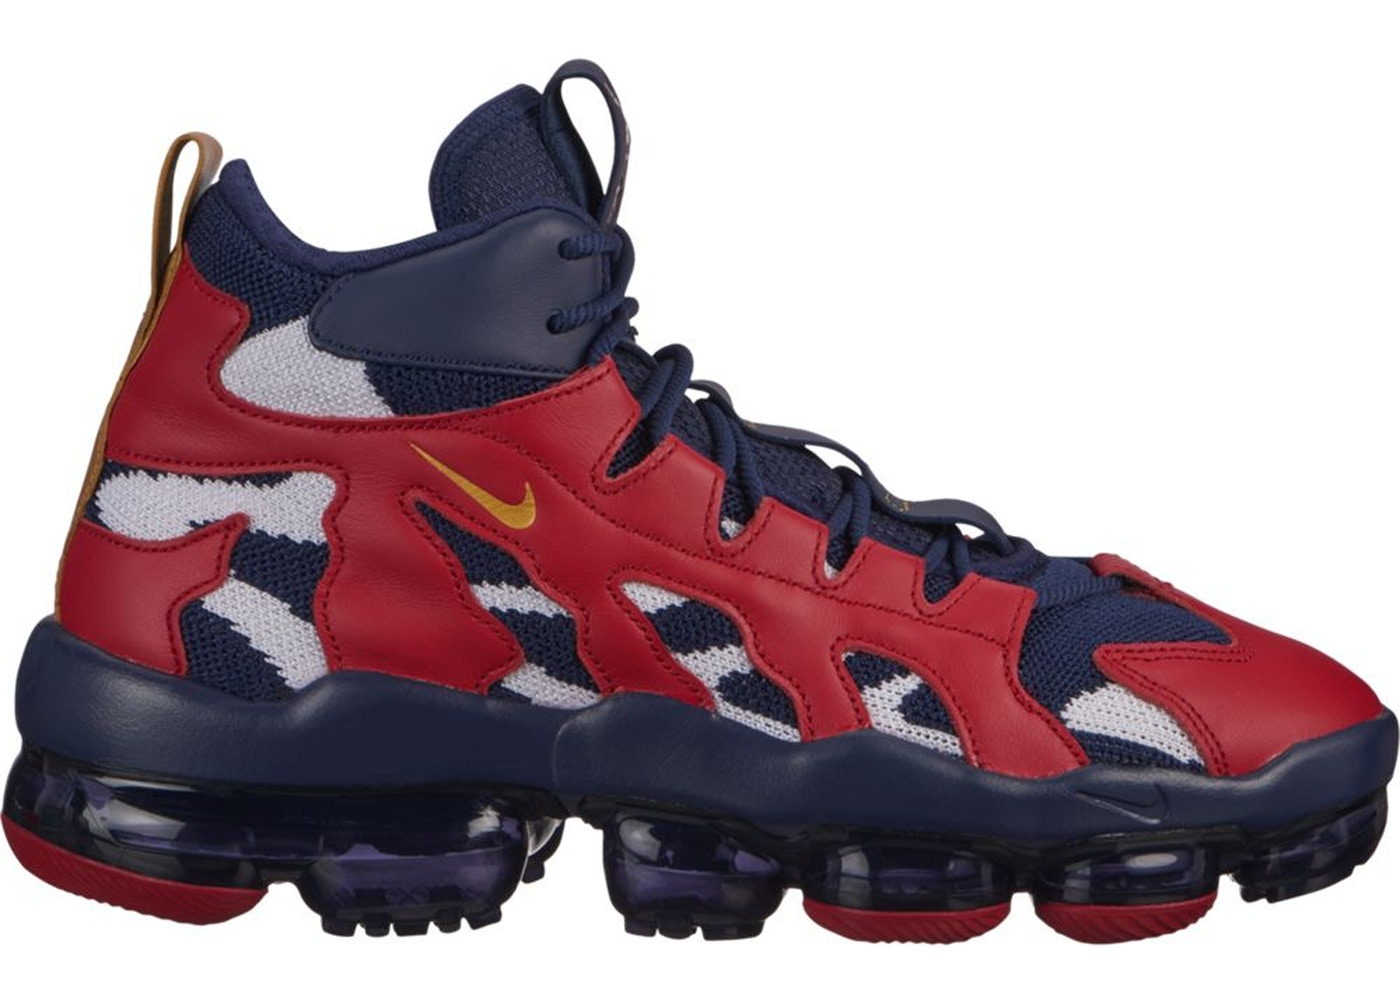 ナイキ NIKE エア スニーカー 【 AIR VAPORMAX GLIESE OLYMPIC MIDNIGHT NAVY METALLIC GOLDGYM RED 】 メンズ